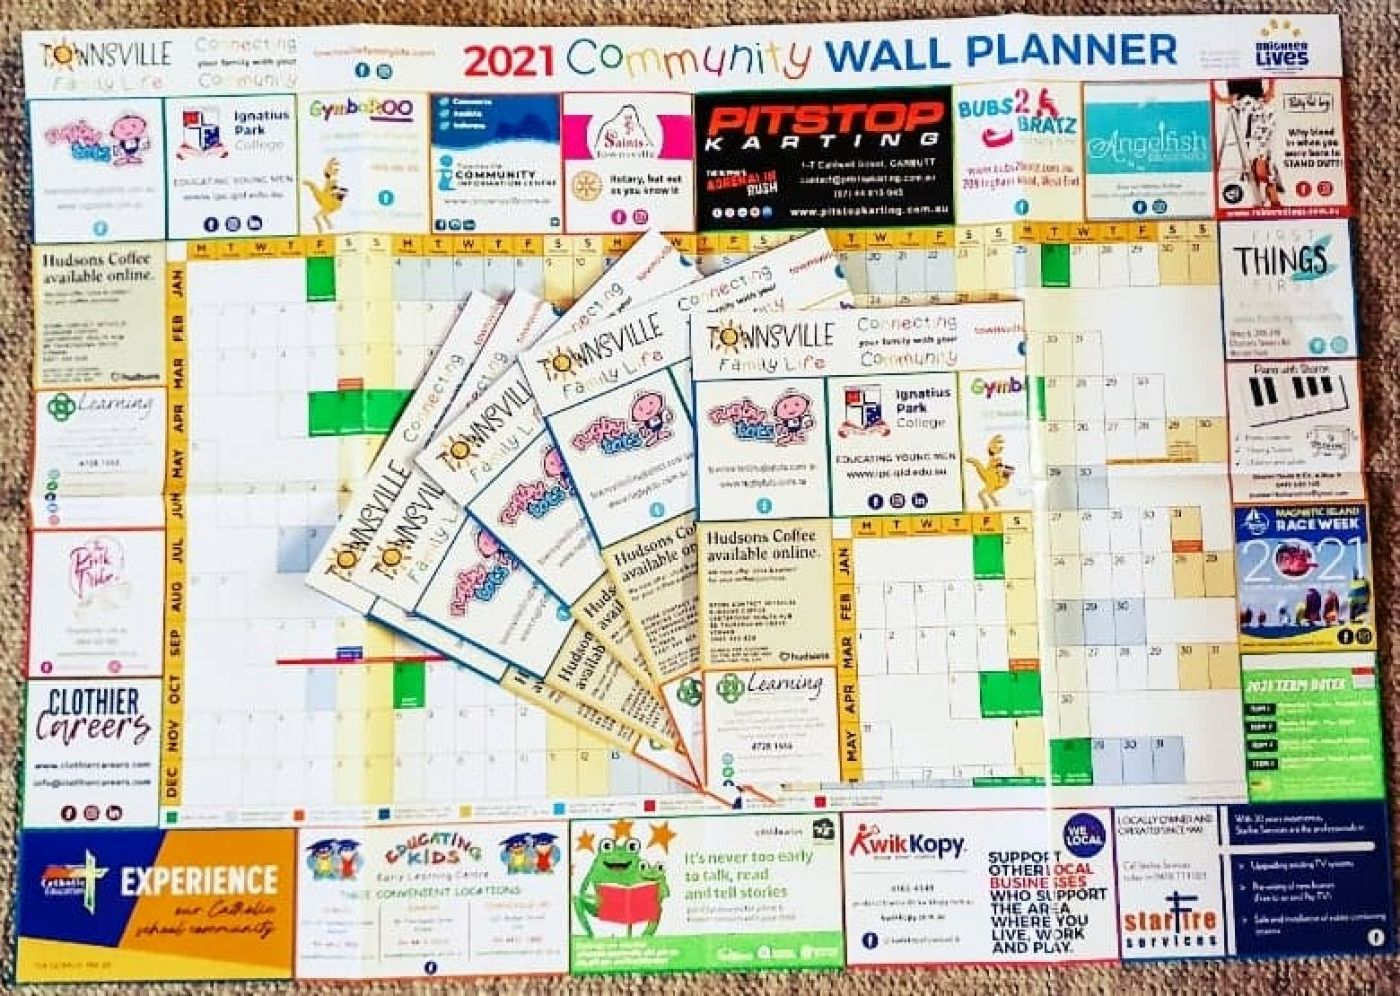 2021 Community Wall Planner